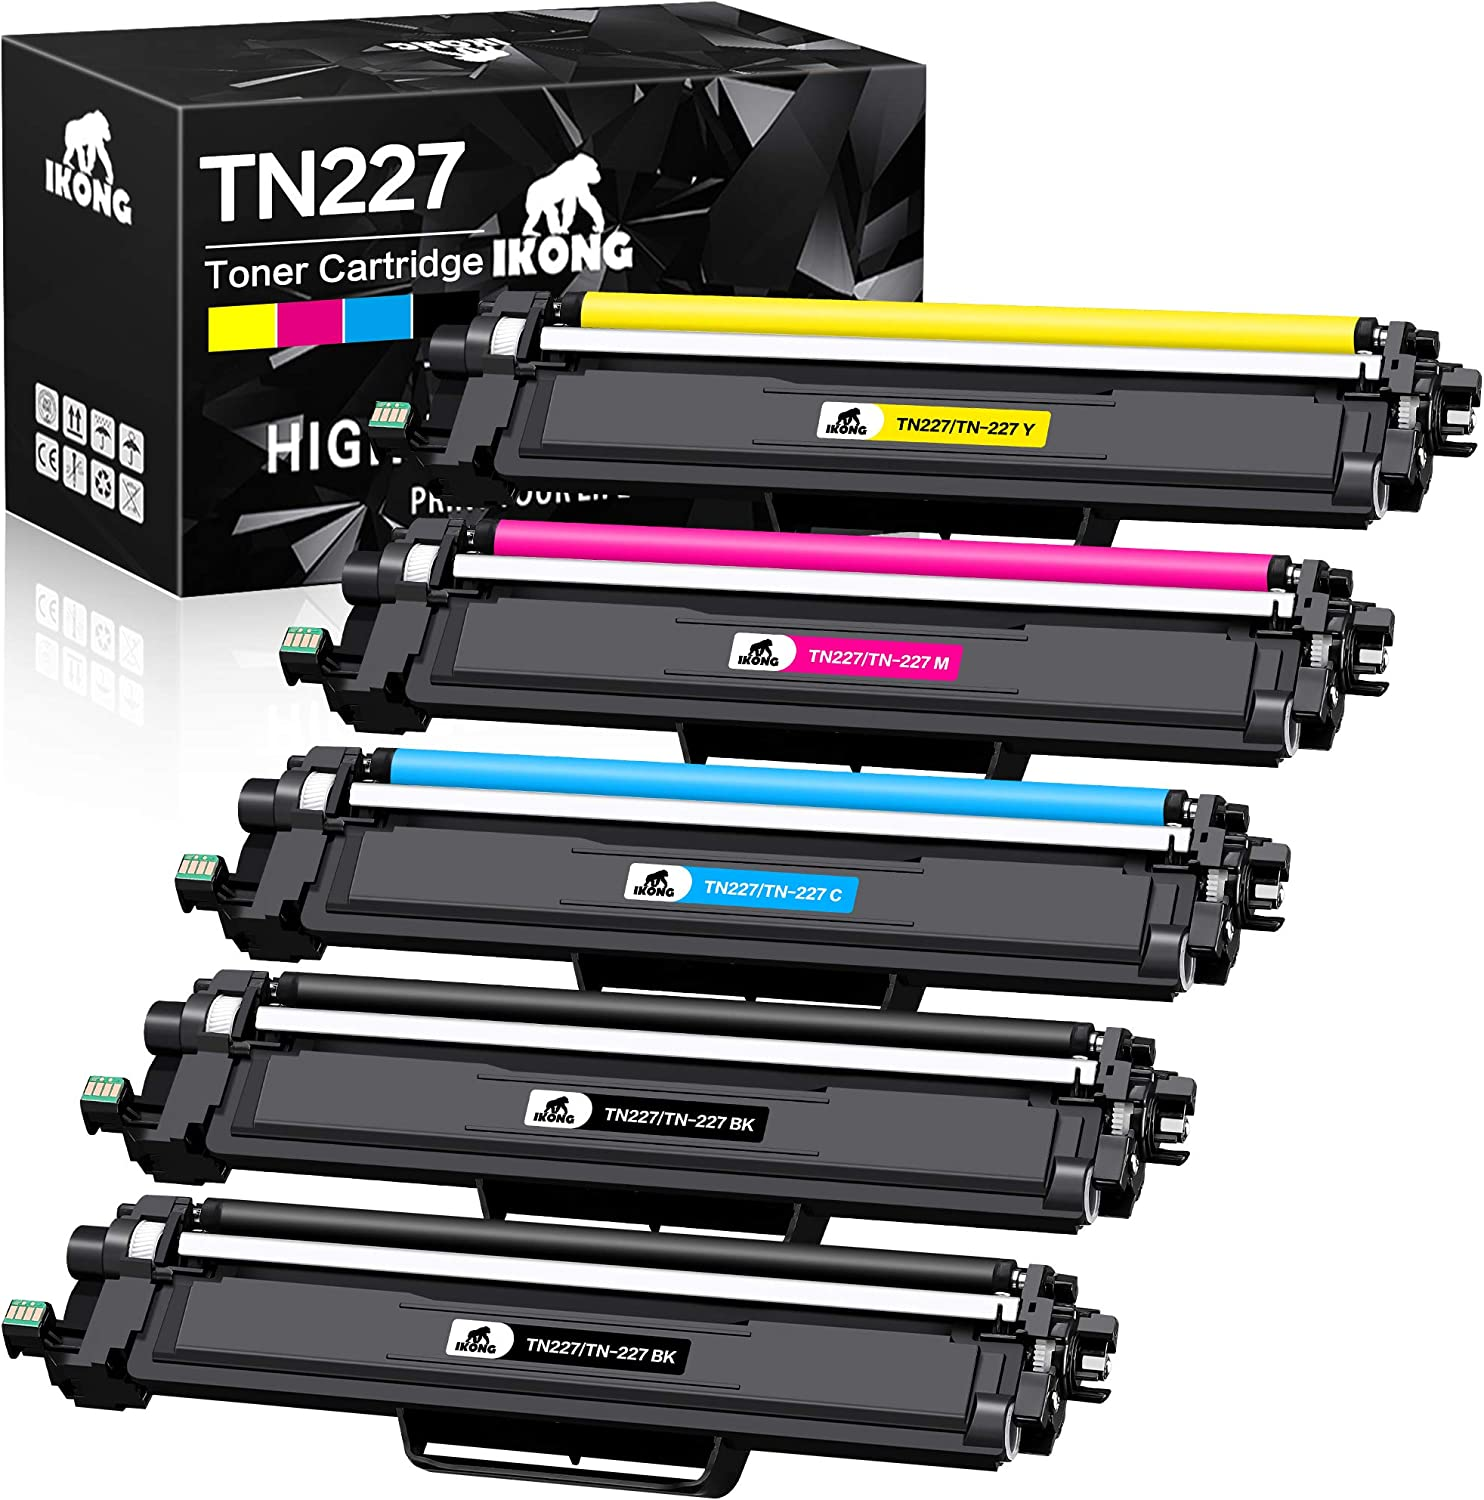 IKONG Compatible Toner Cartridge Replacement for Brother TN227 TN-227 TN223 TN-223 use with MFC-L3770CDW MFC-L3750CDW MFC-L3710CW HL-L3210CW HL-L3230CDW HL-L3290CDW